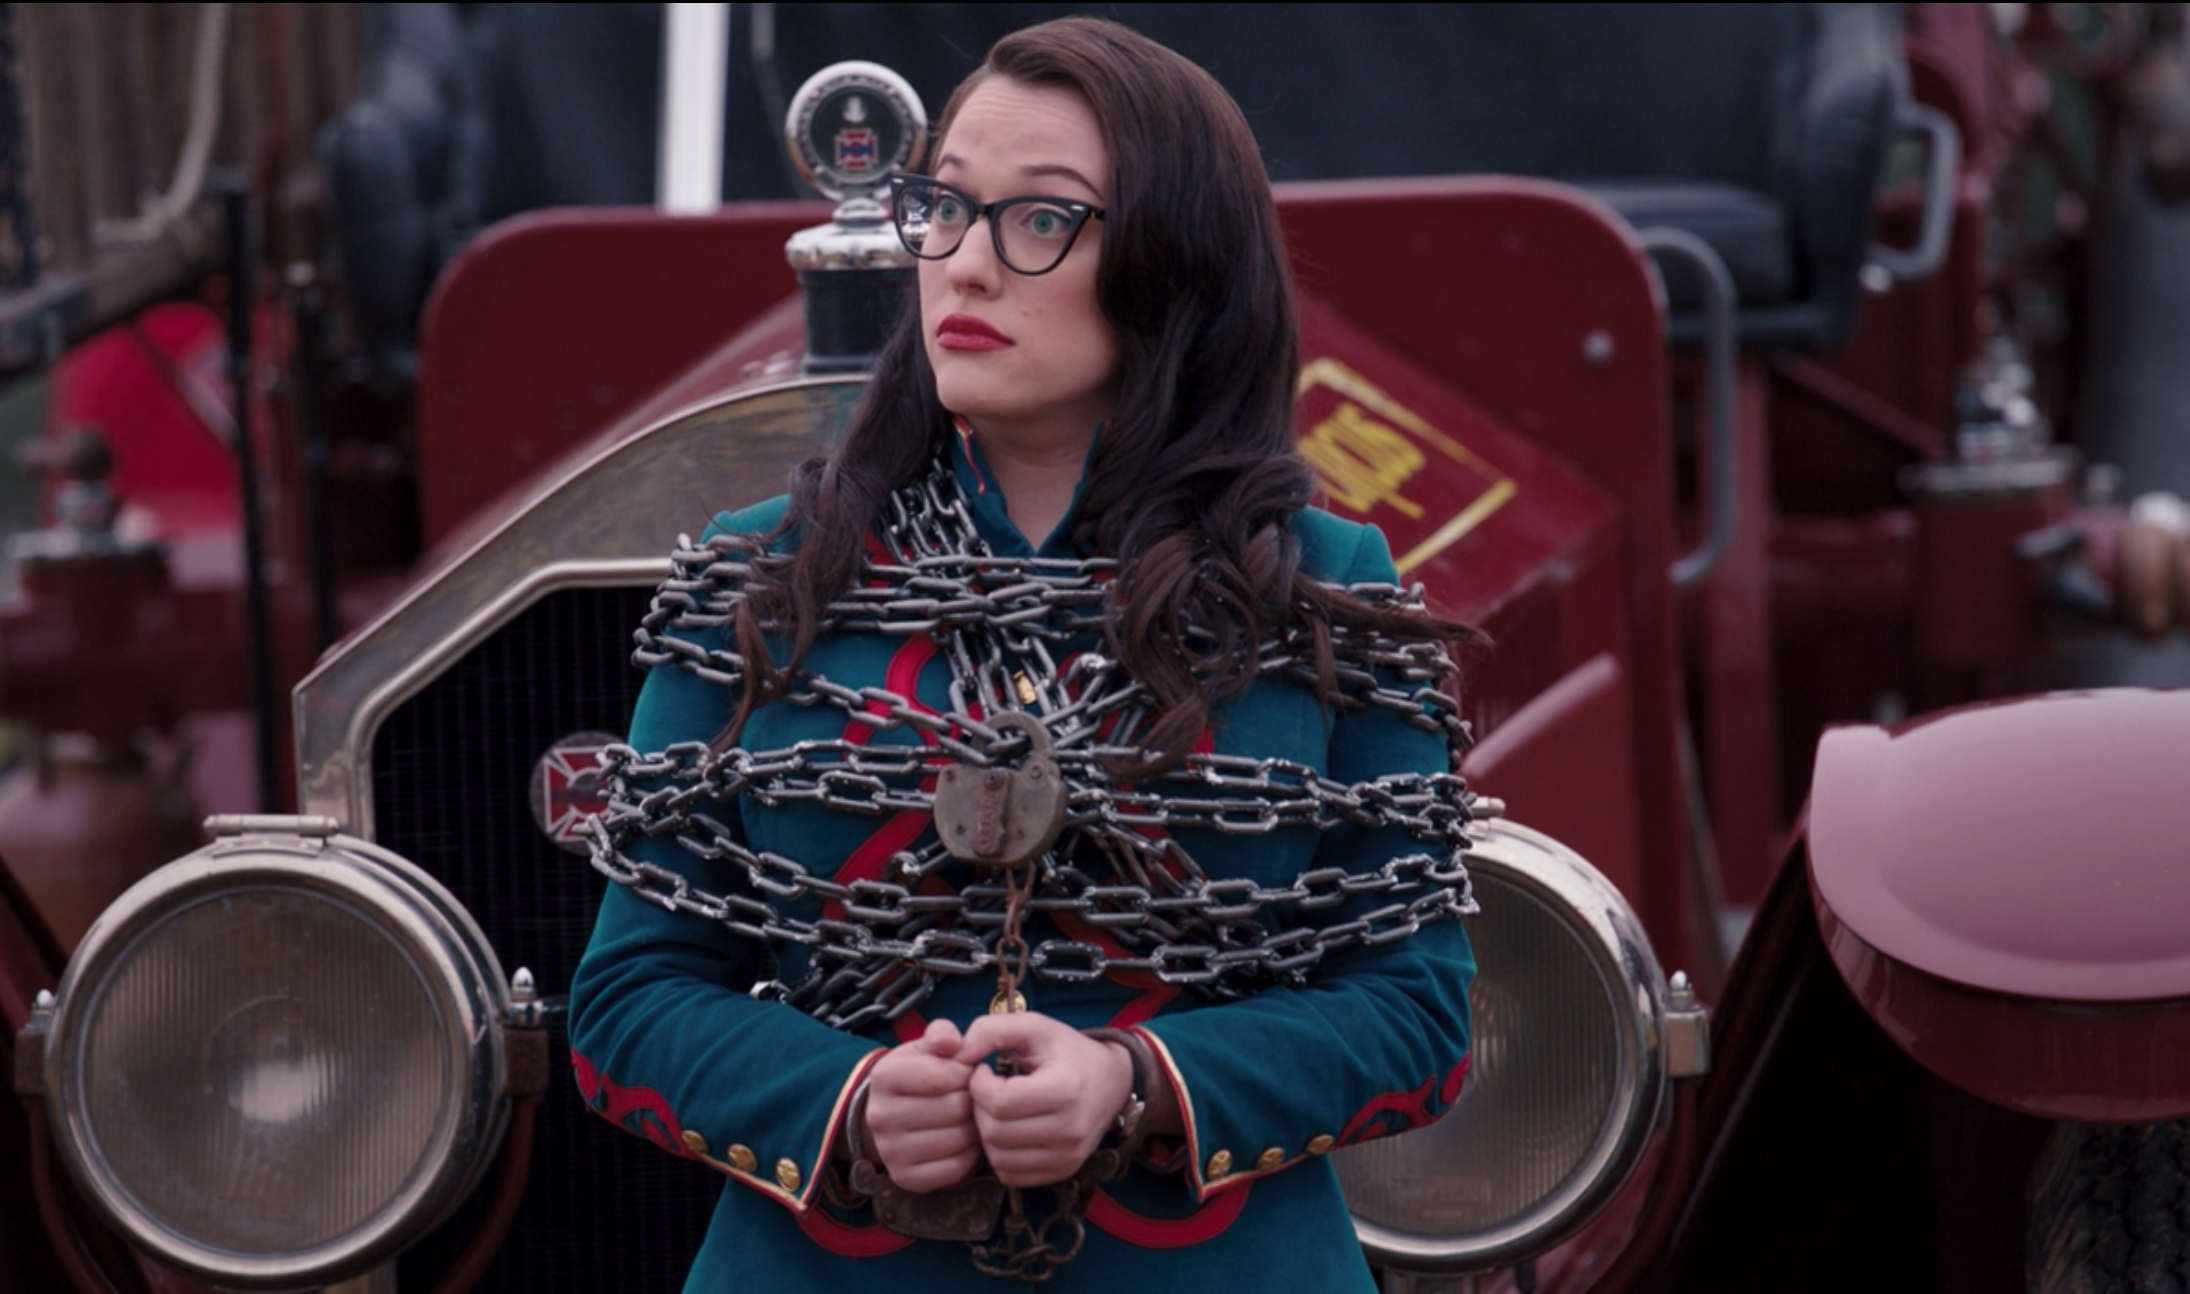 Darcy Lewis has chains across her chest and arms as she stands in front of an old timey car.